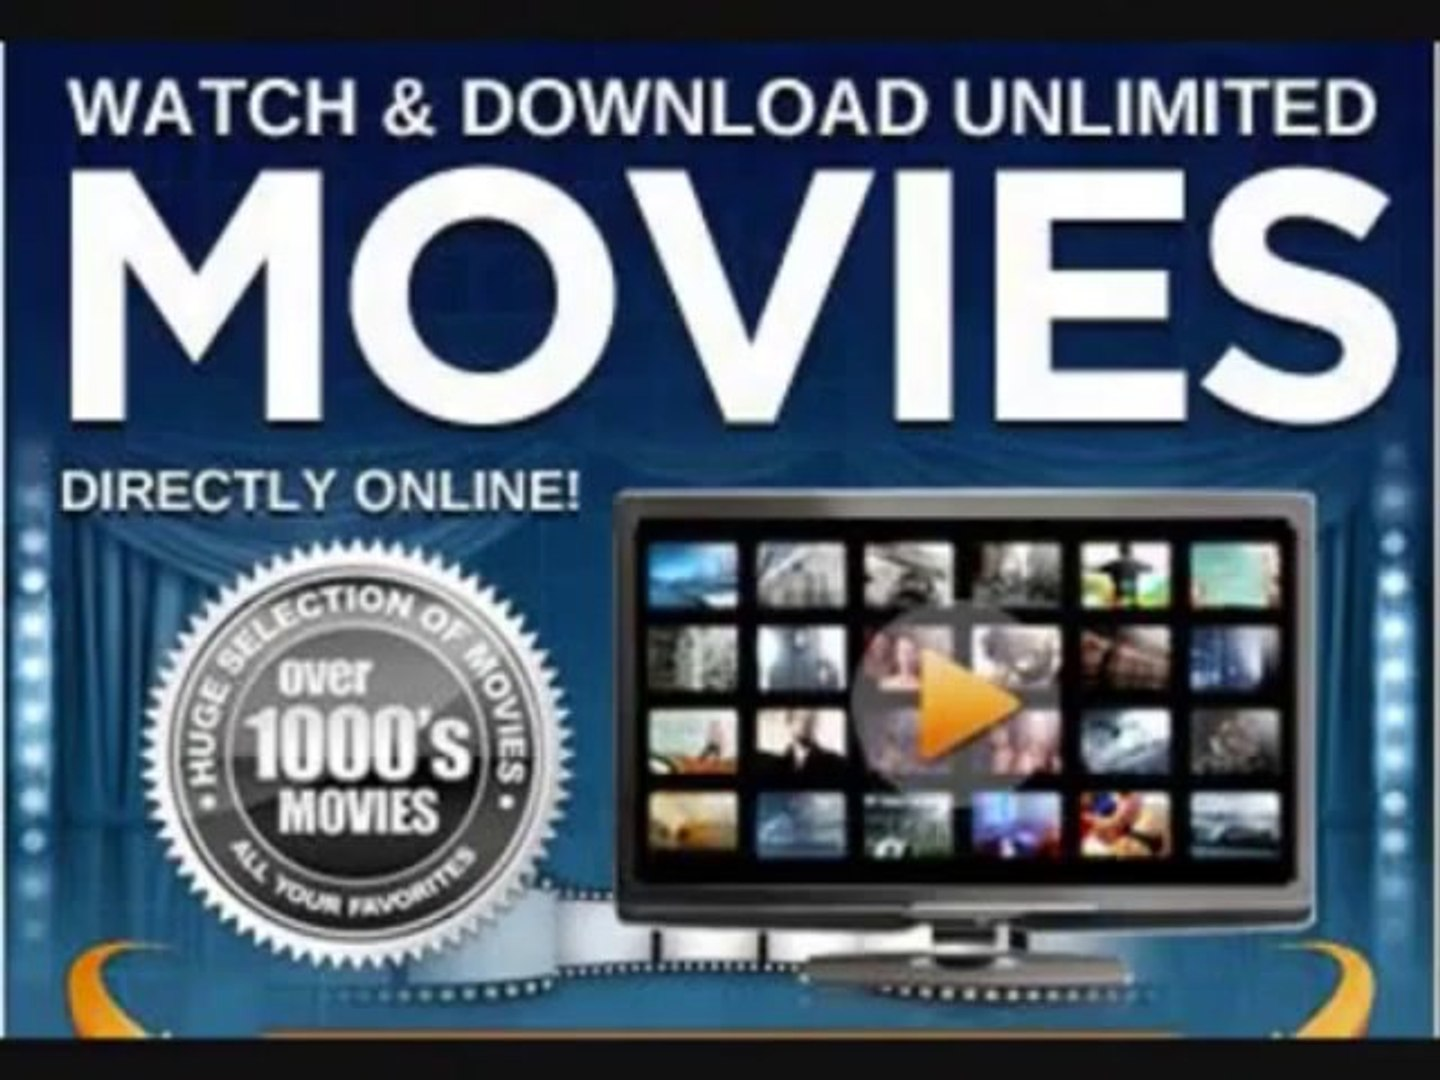 My Movie Pass - Watch and Download Unlimted Movies Online - Watch Movies now